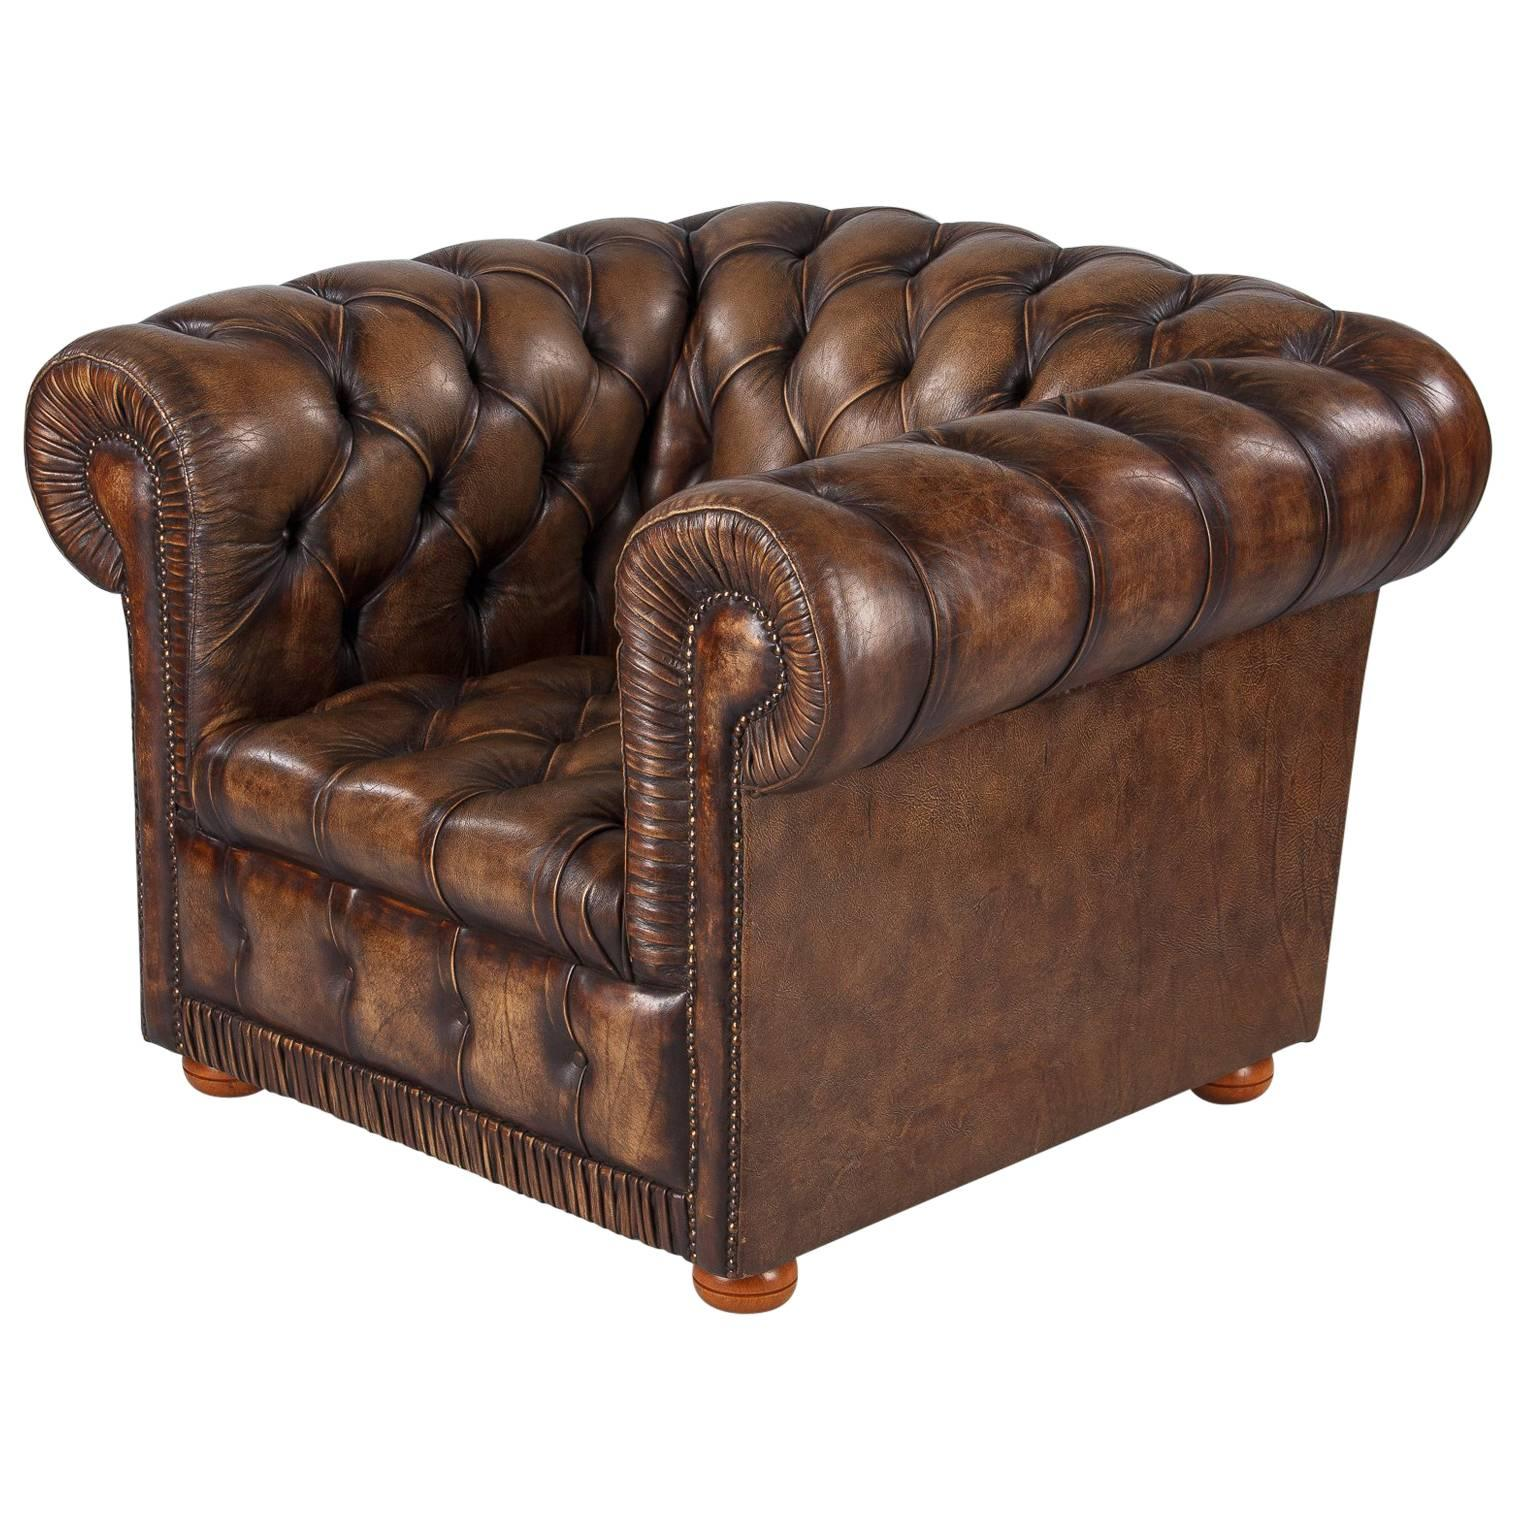 Vintage English Chesterfield Armchair in Brown Leather, 1960s For Sale